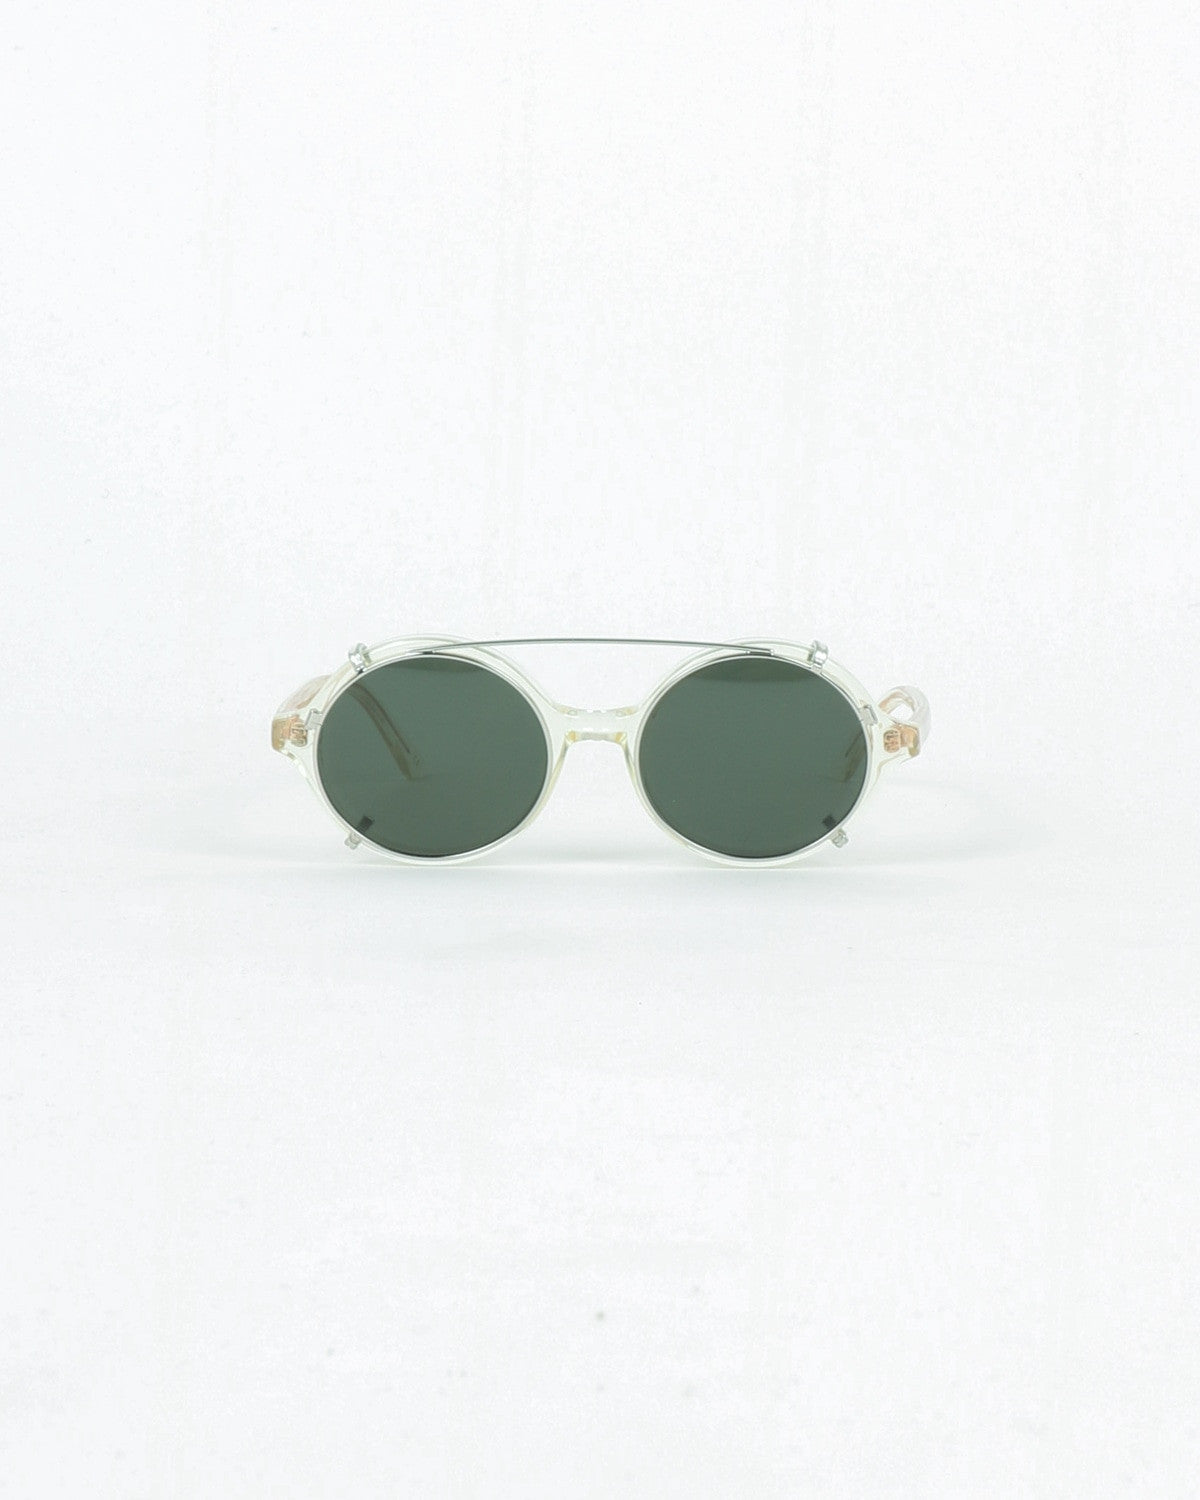 han kjobenhavn_doc clip on_sunglasses_champagne clear_view_4_4